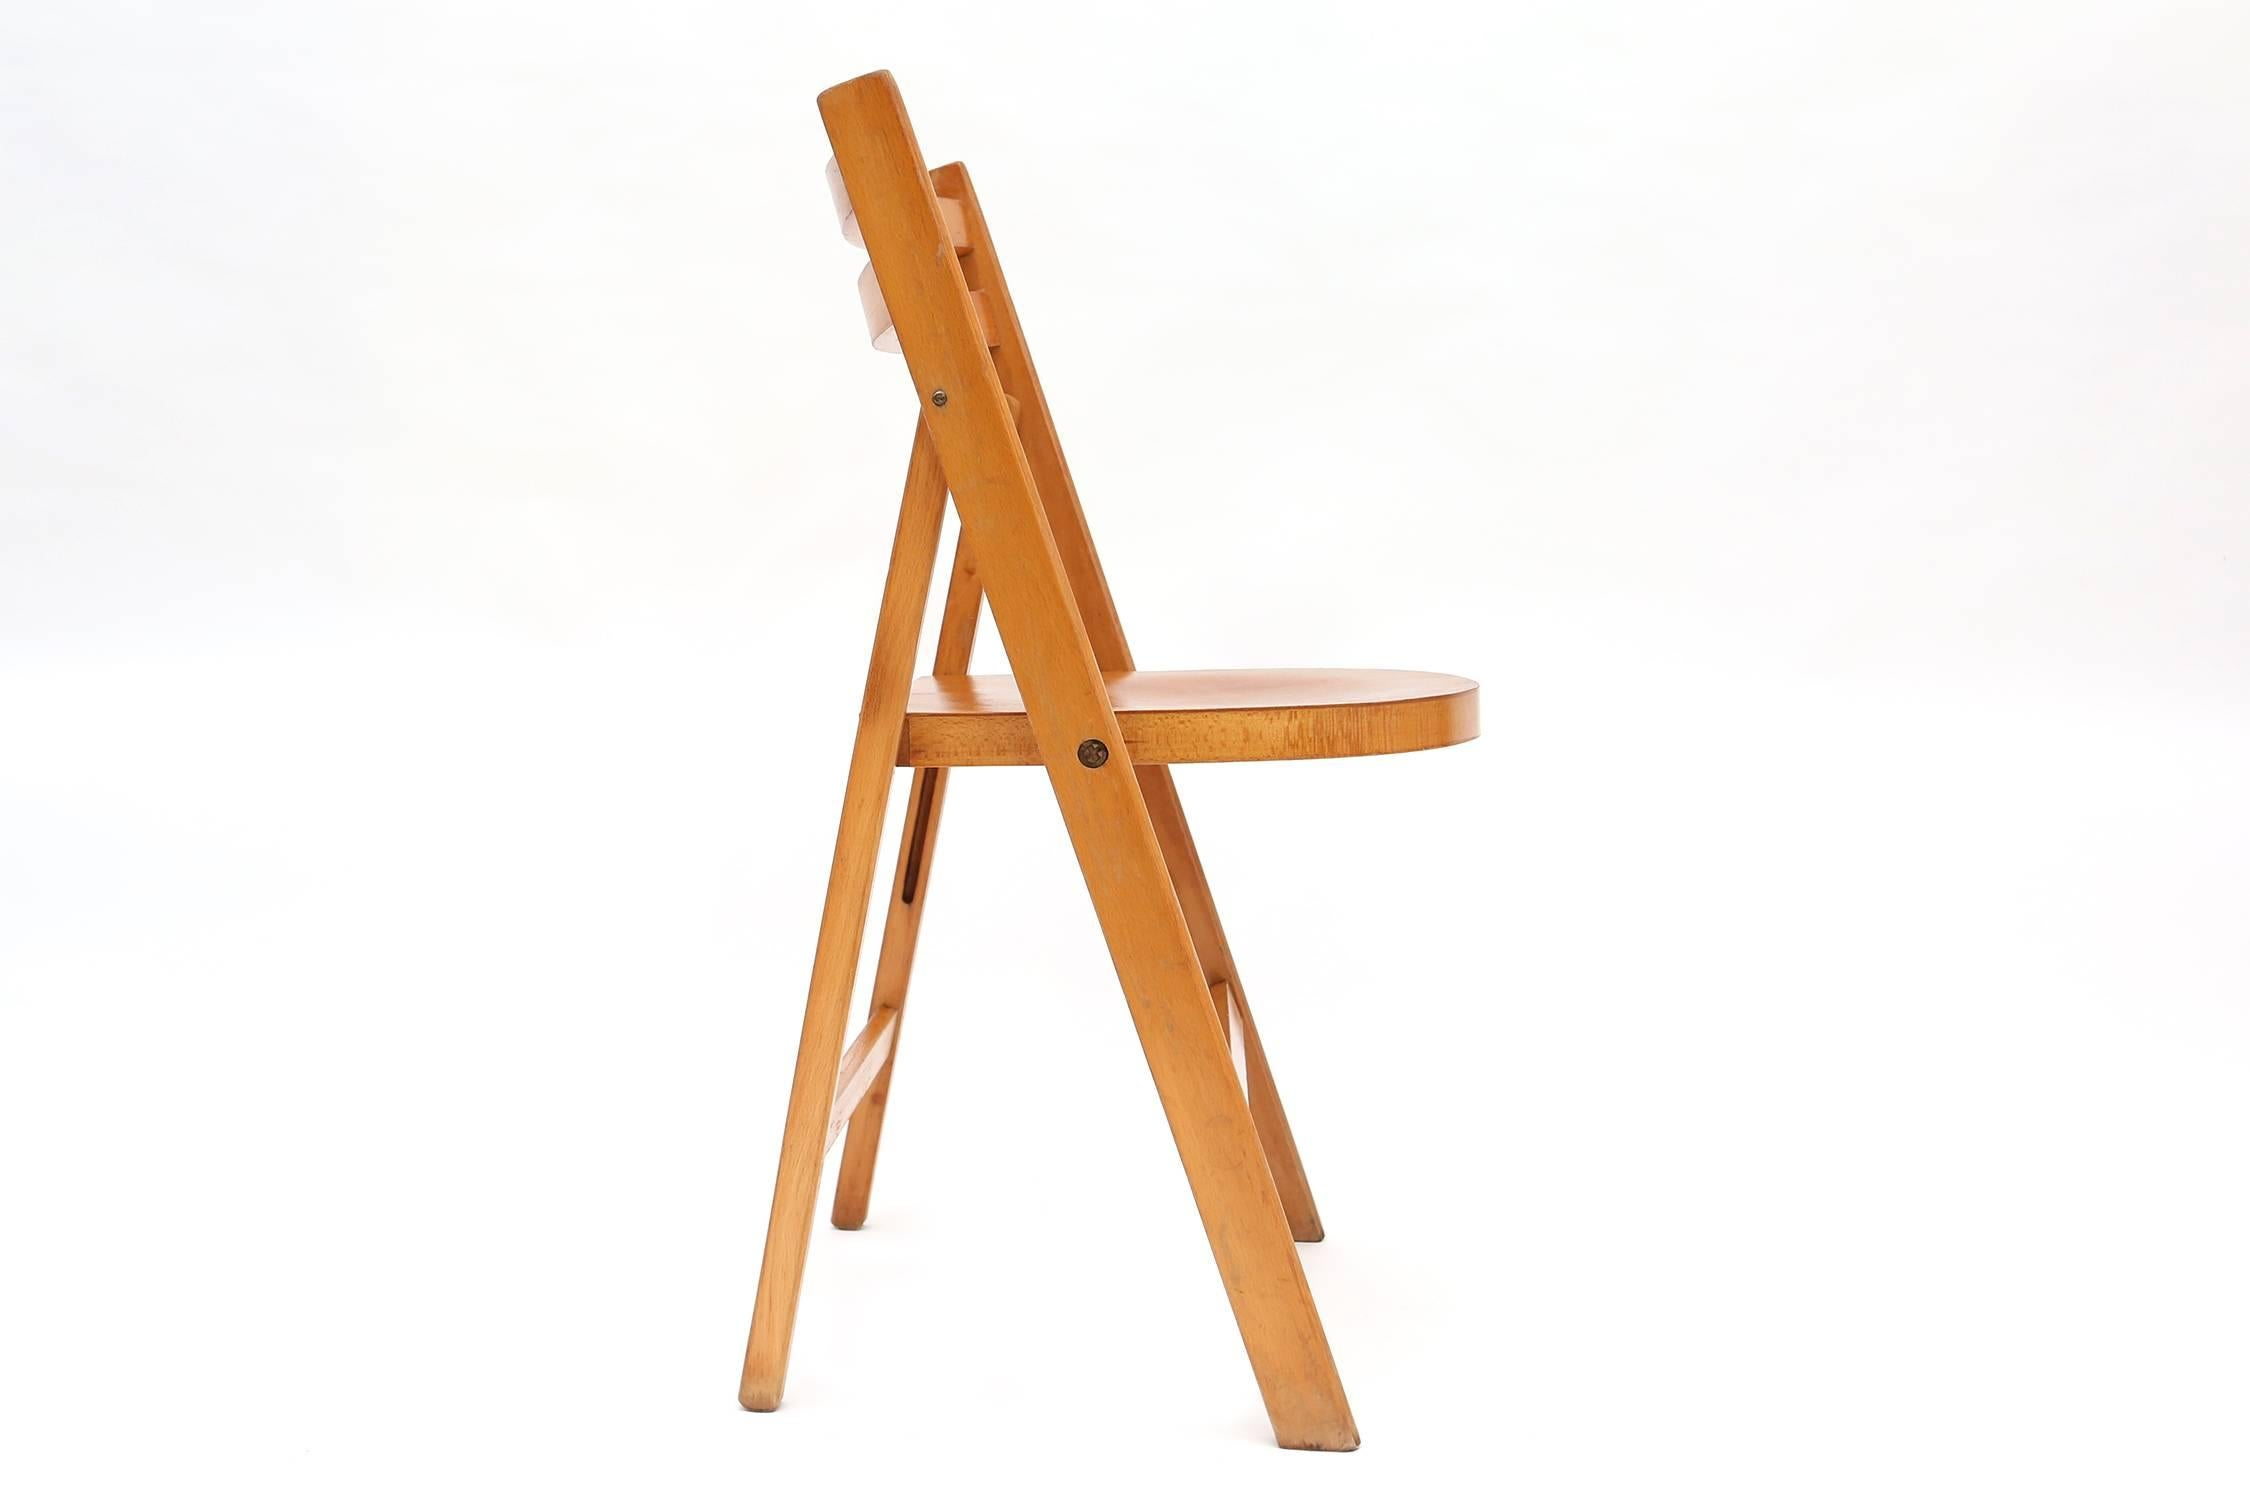 Antieke Lounge Stoel.Wooden Folding Chairs 11 For Sale On 1stdibs